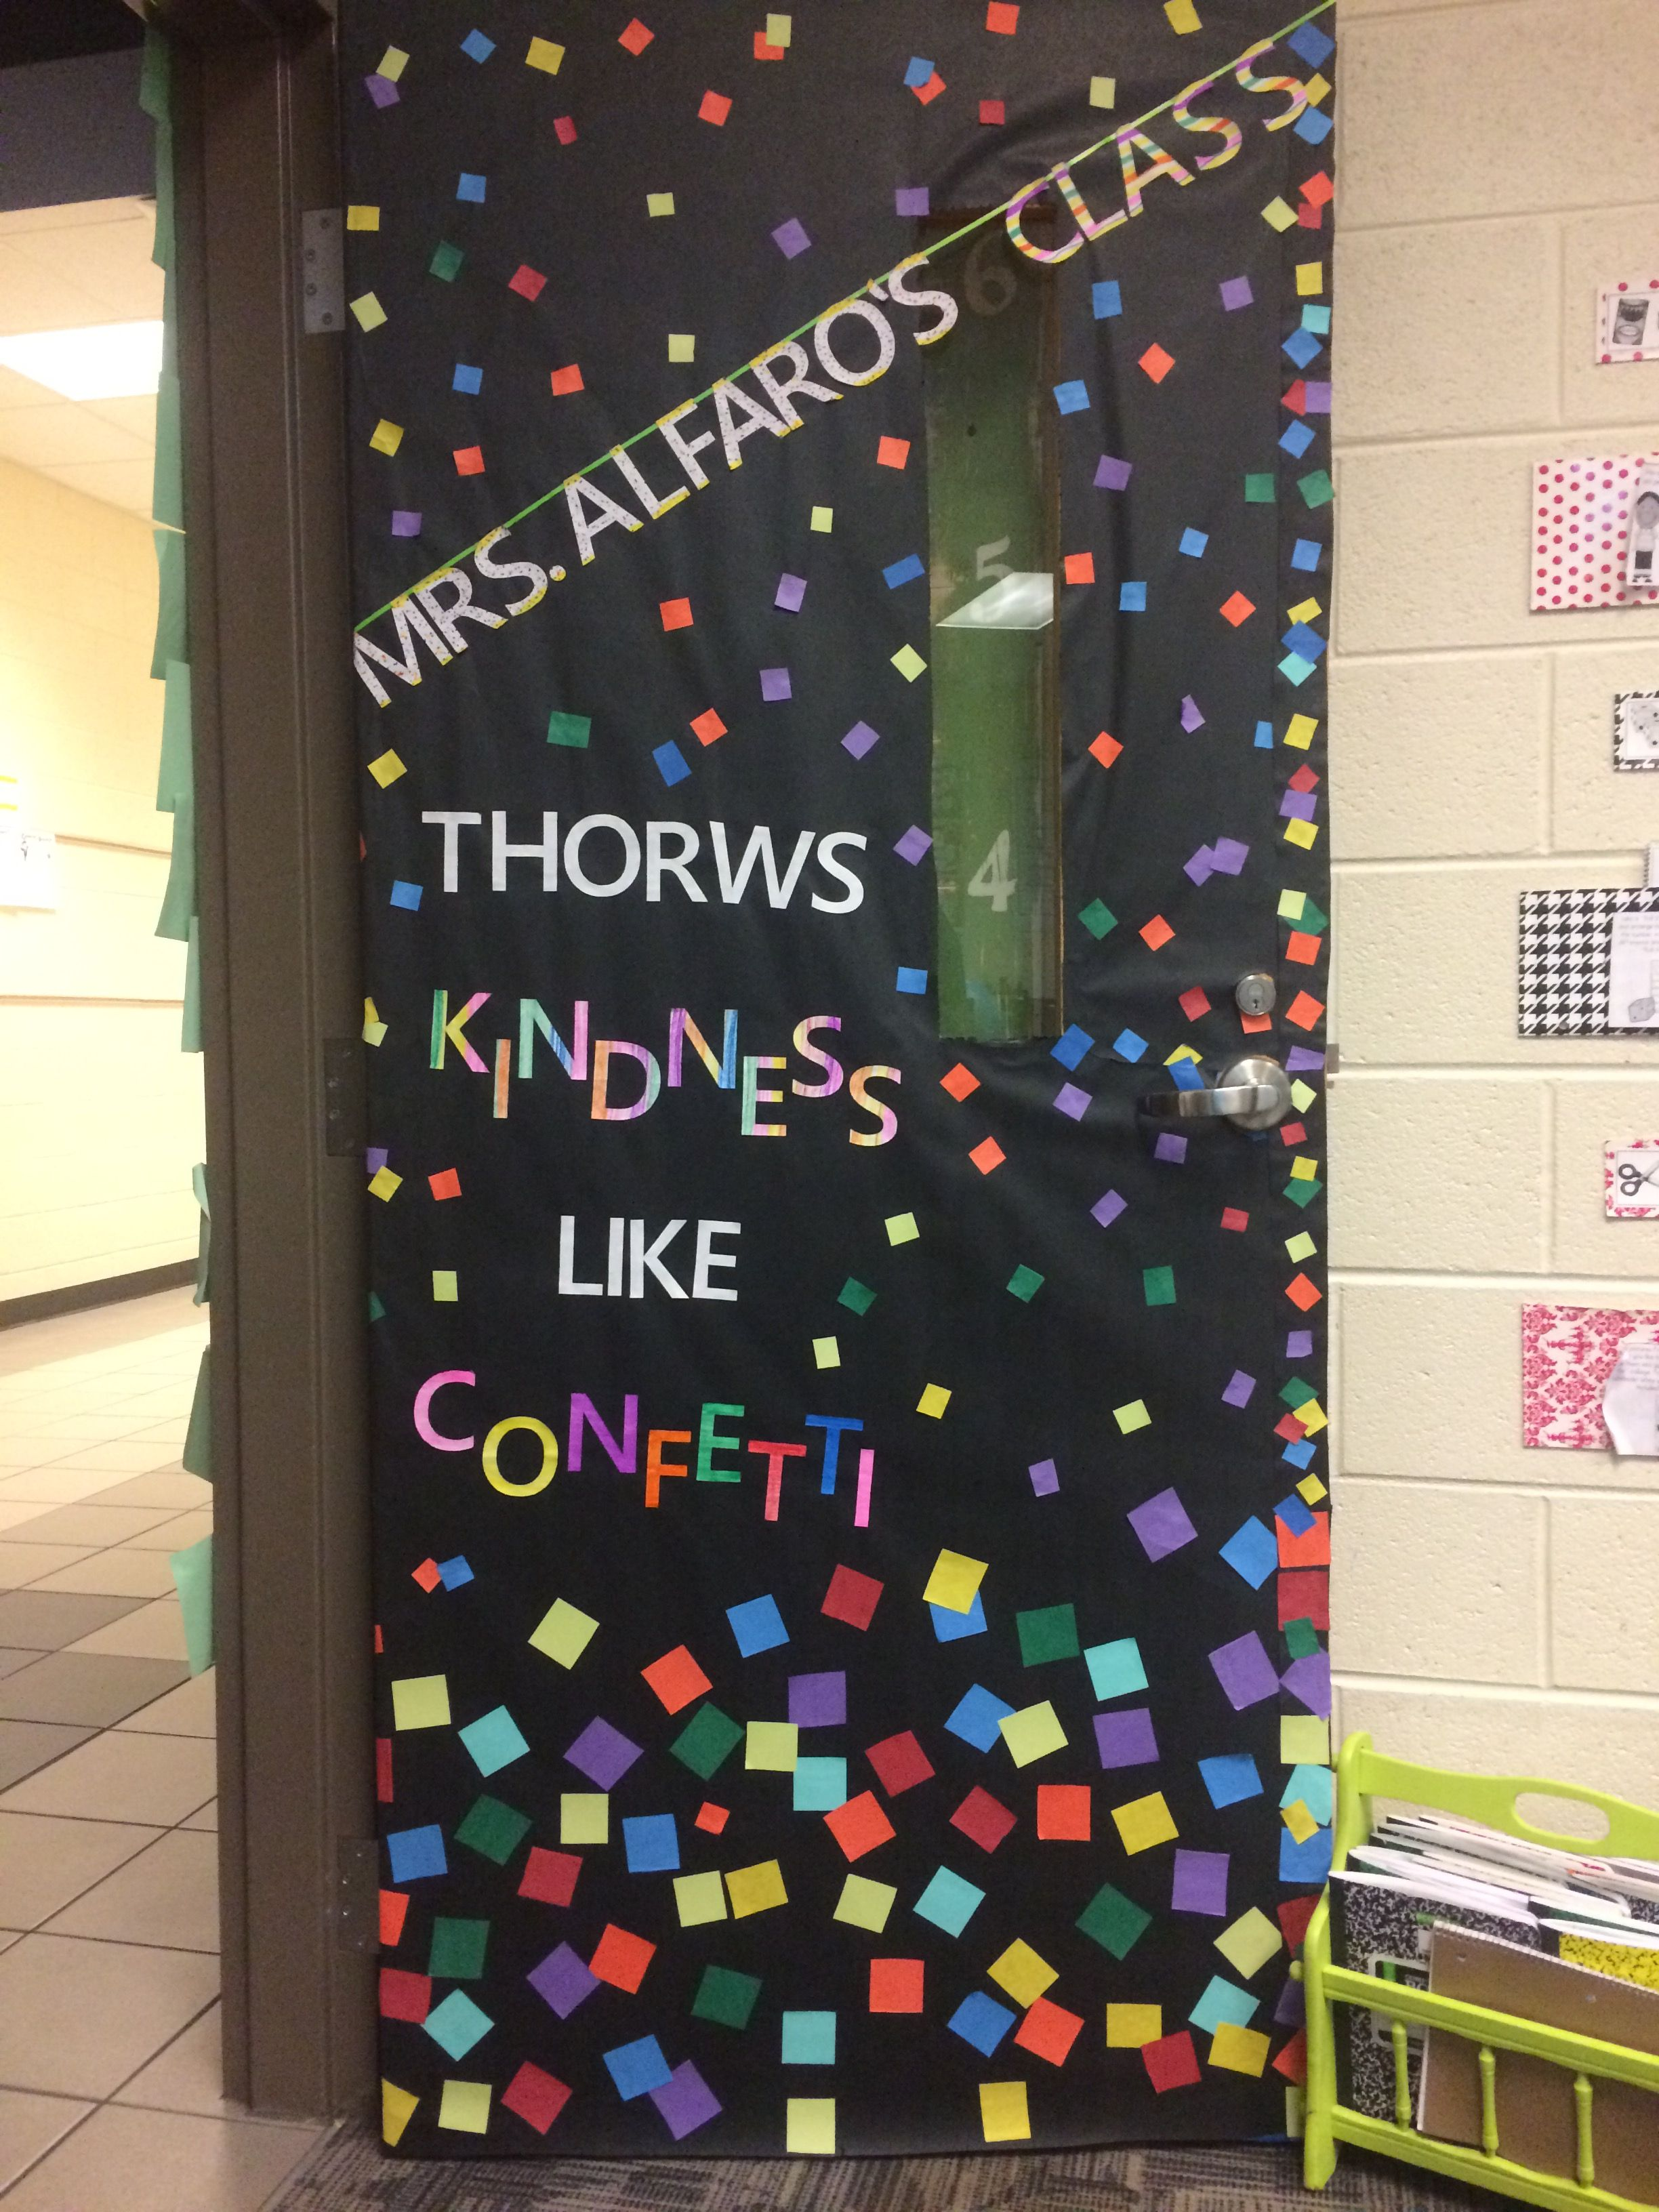 Mrs Alfaro S Class Throws Kindness Like Confetti Education Ideas